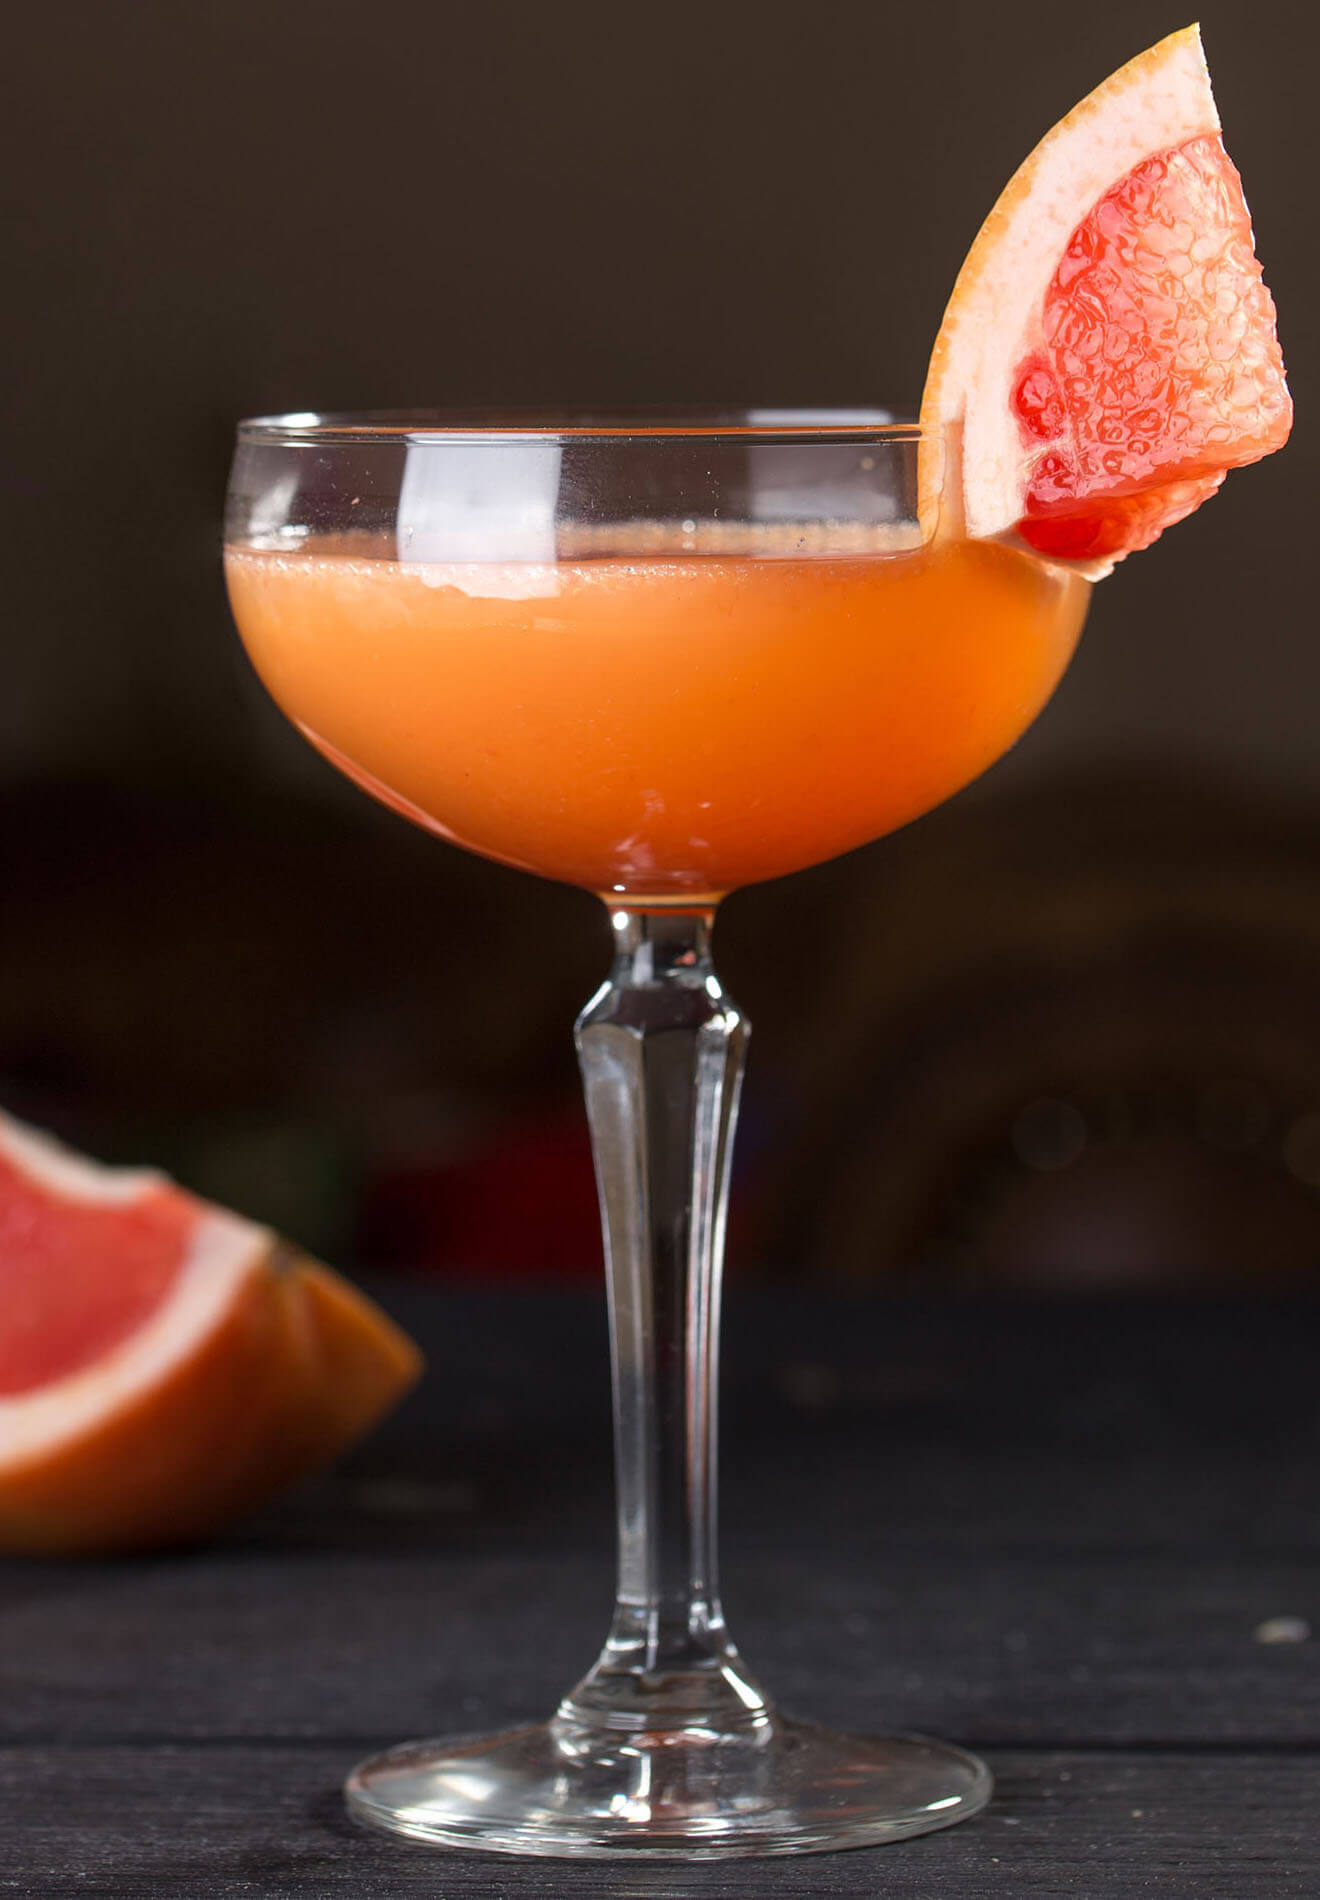 The Bittersweet cocktail with grapefruit garnish